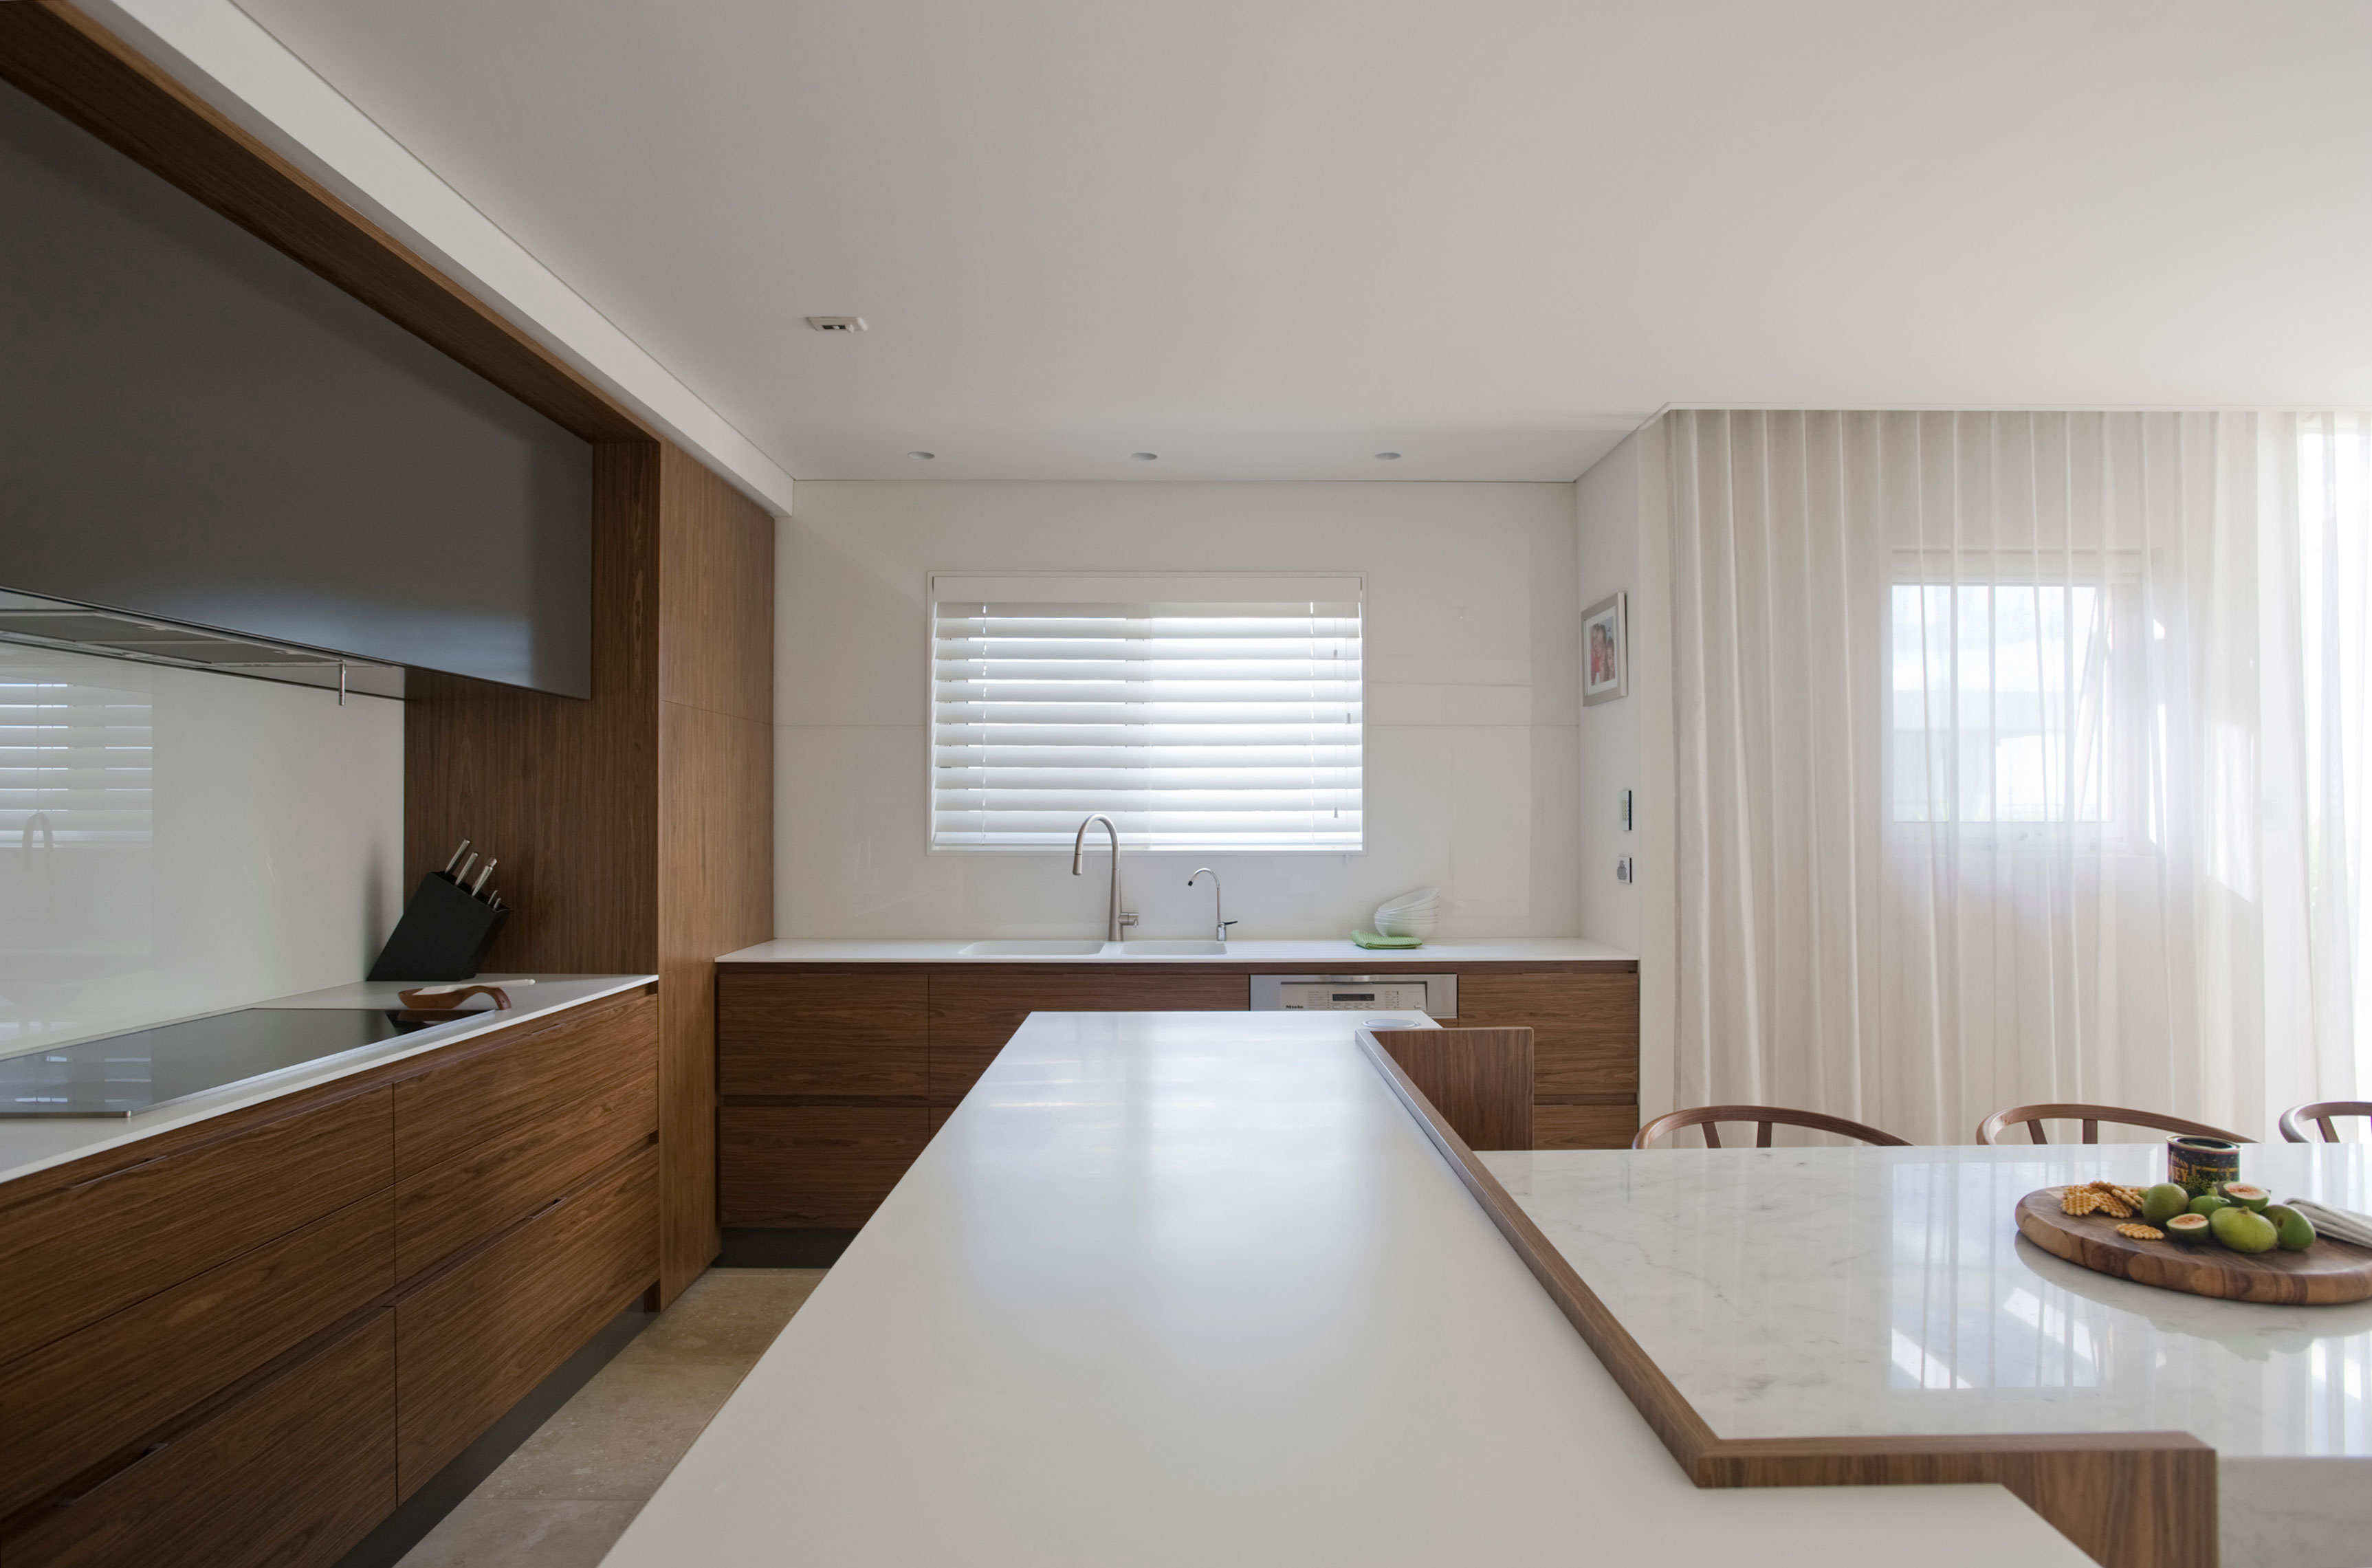 Modern White Marble Kitchen Countertop And Bar With Modern Bar Stools